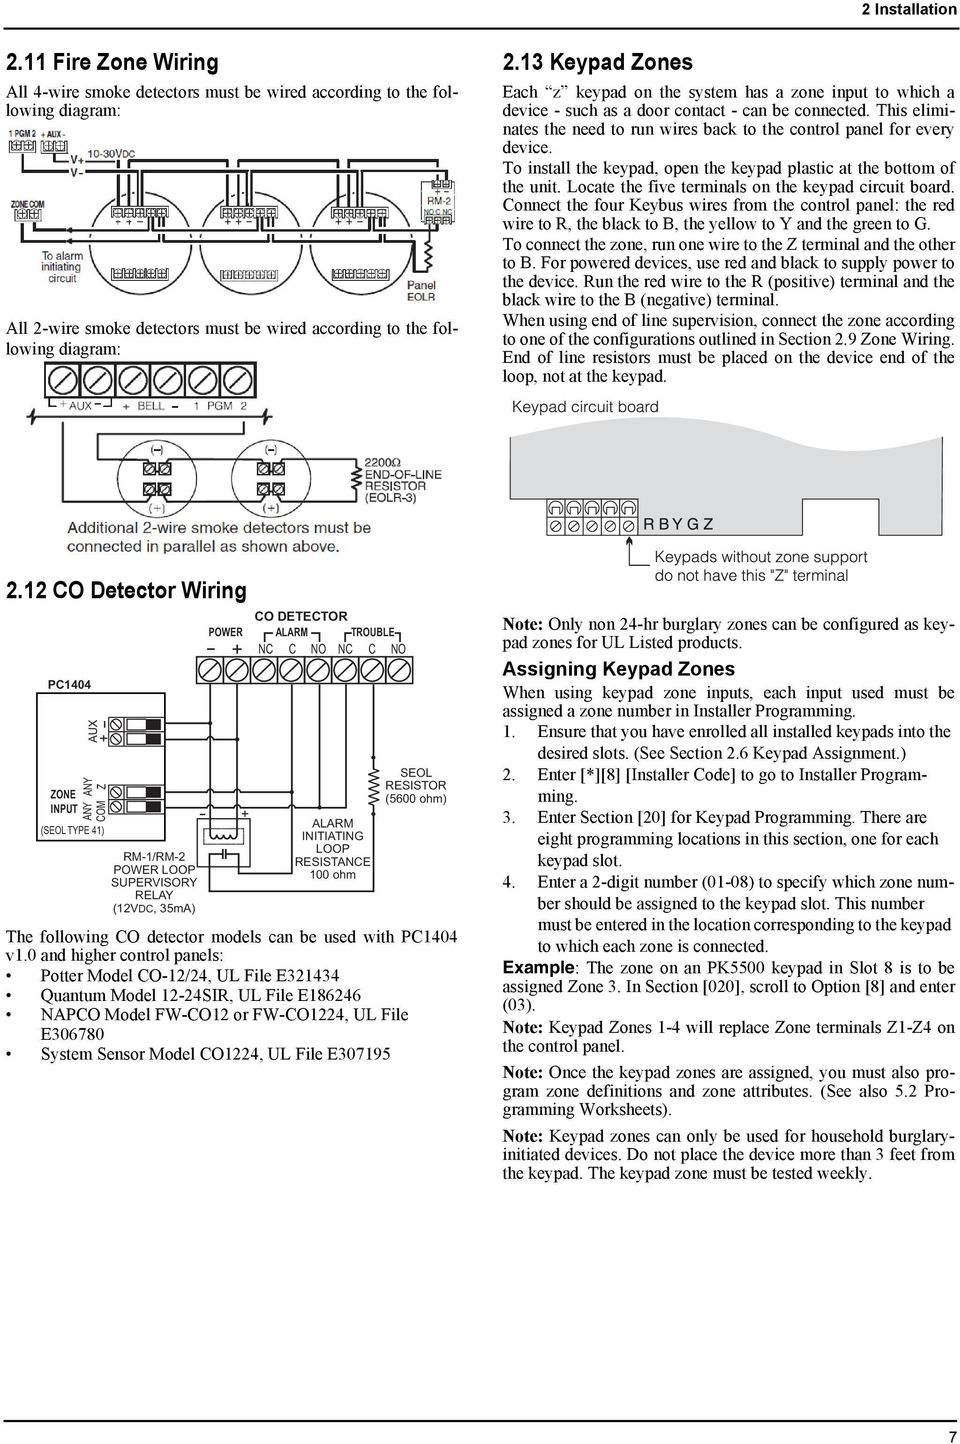 Pc1404 V10 Installation Guide Pdf Series Fire Alarm Wiring Including 4 Wire Smoke Detector This Eliminates The Need To Run Wires Back Control Panel For Every Device